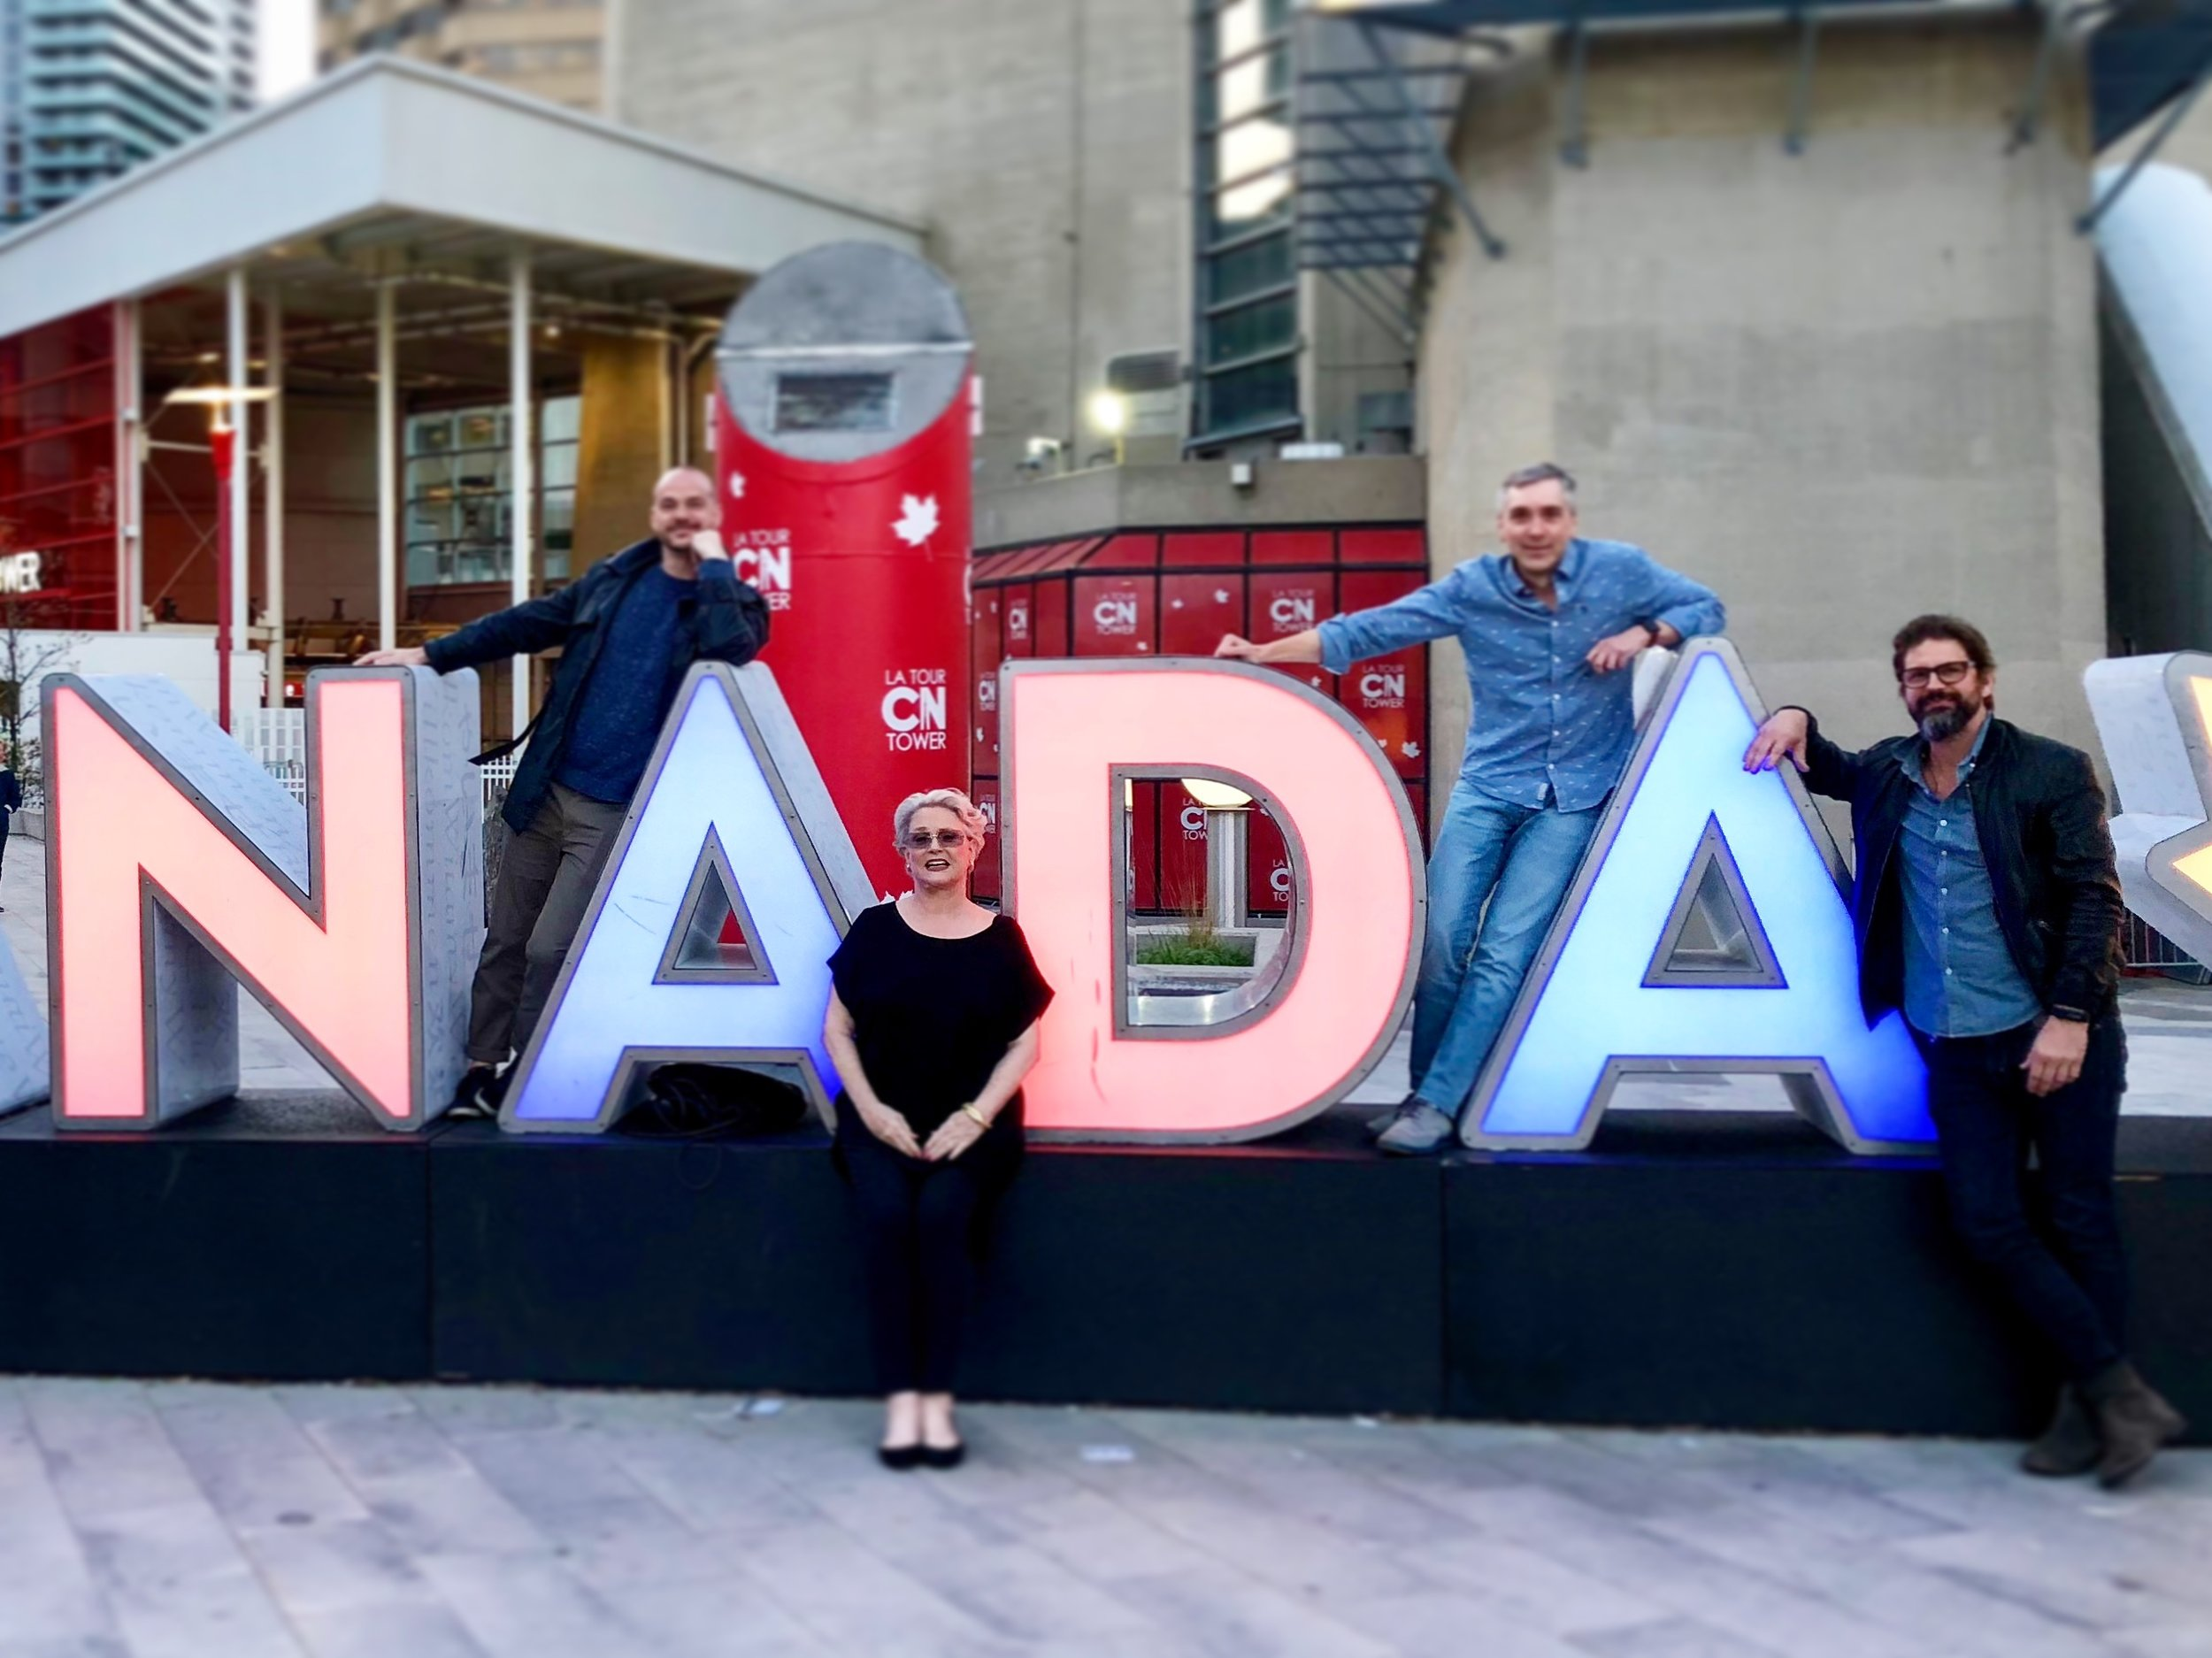 Toronto for LGBT Travel Agent Convention (l - r) Peter Paige, Sharon Gless, Scott, Gale Harold